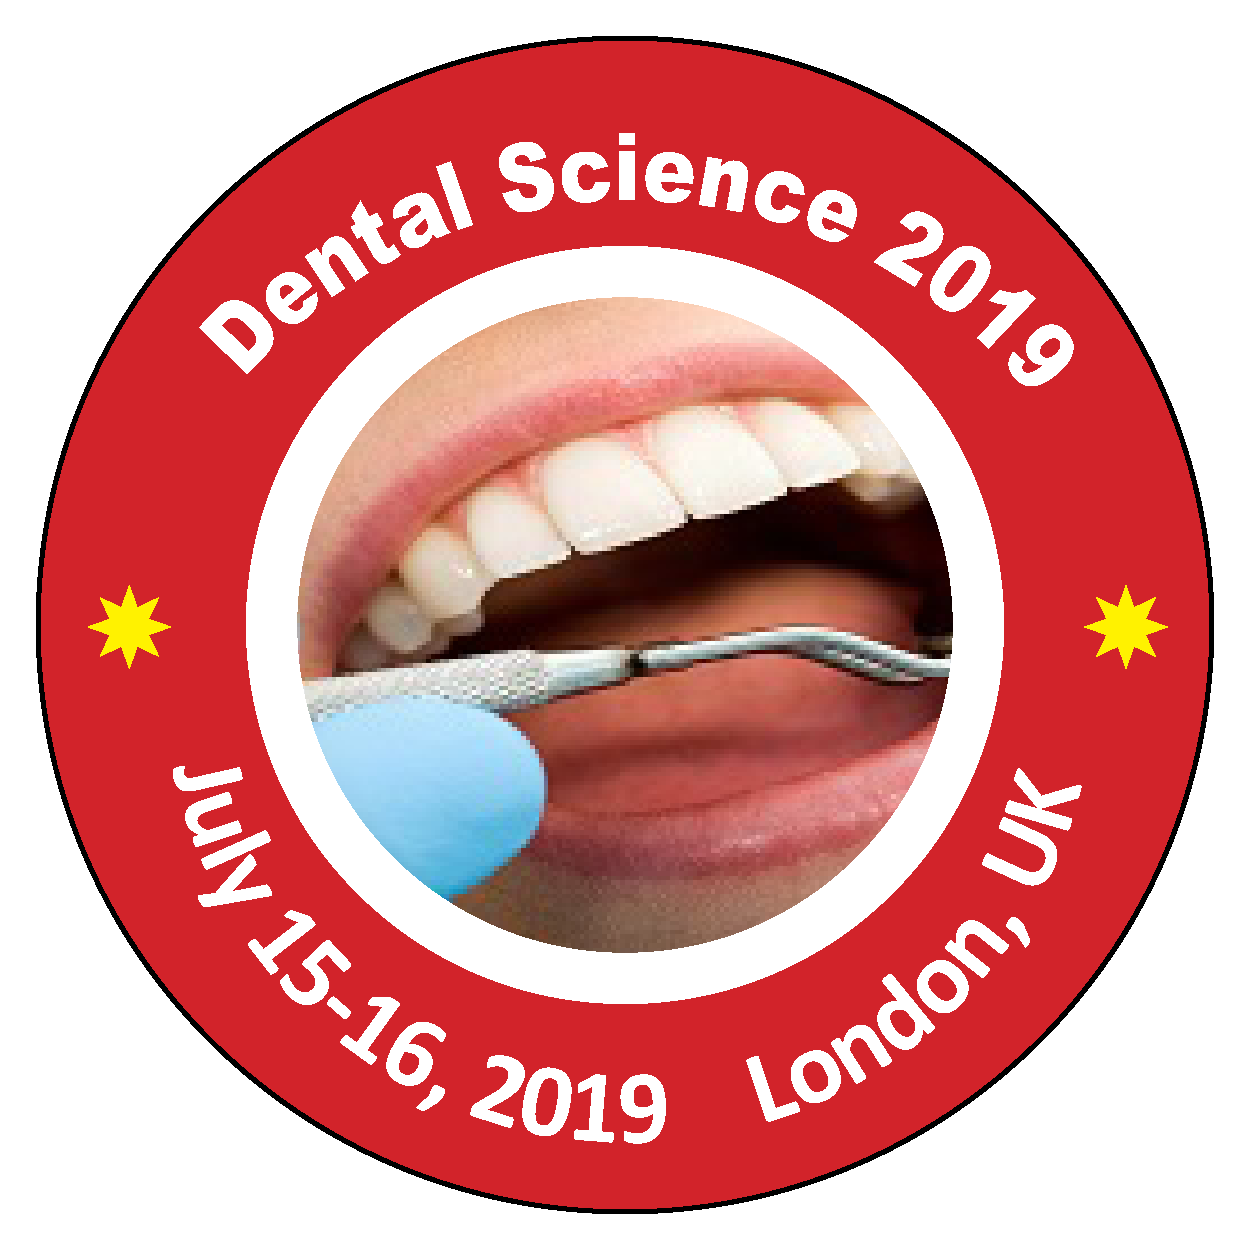 Dental Conference| Dental science| Dental Practice| Europe | London